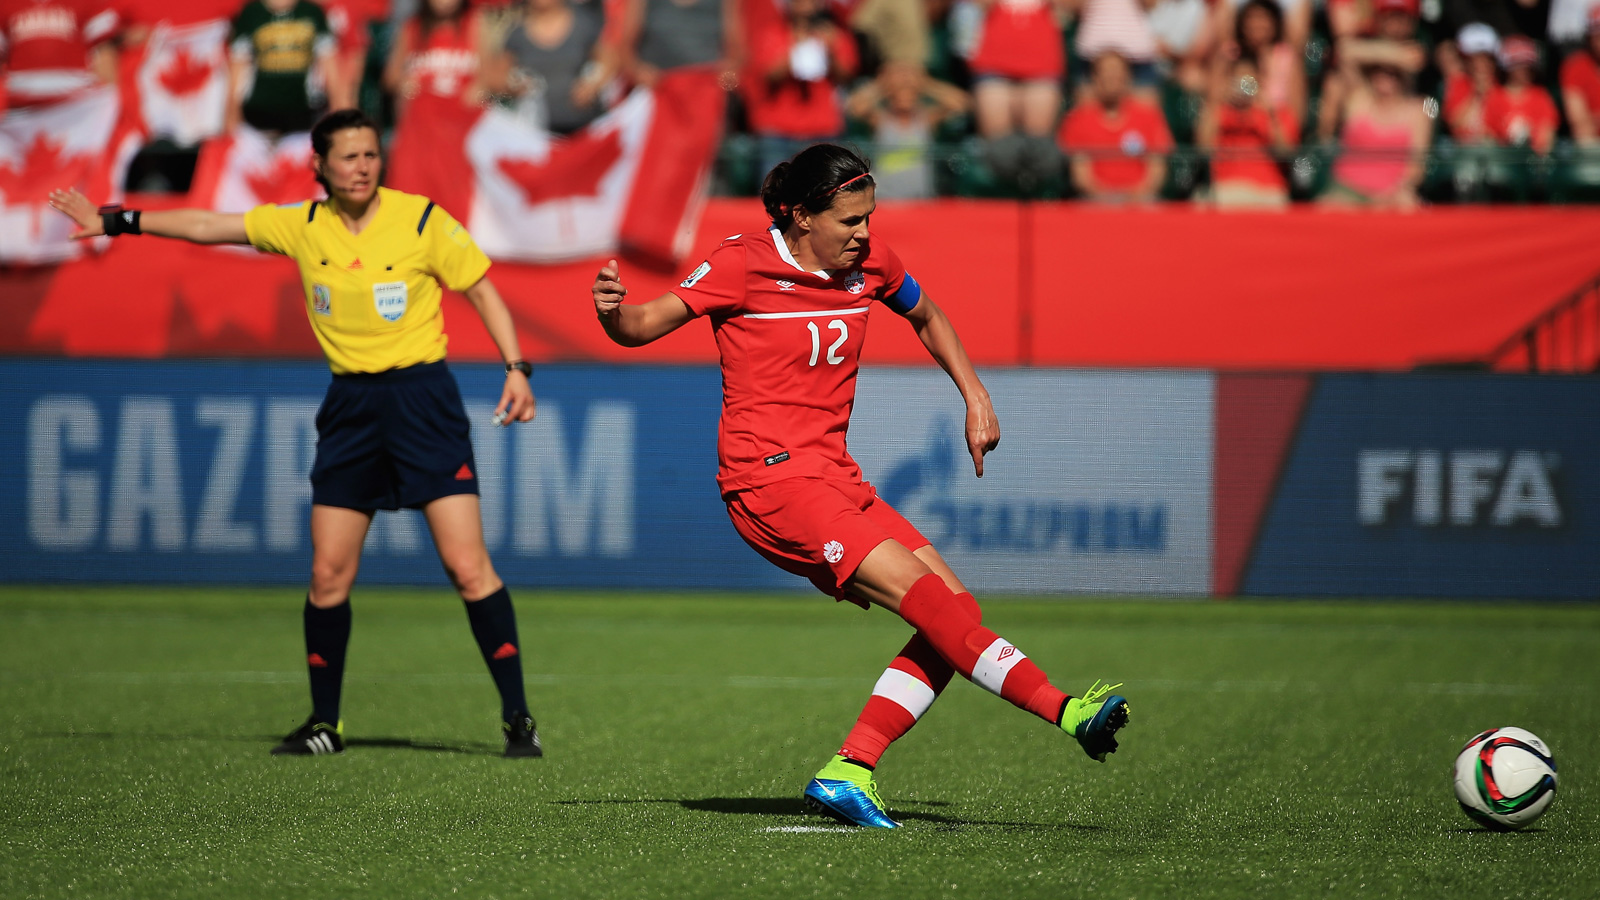 Christine Sinclair takes the penalty kick in stoppage time, after Ukrainian referee Natalia Rachynska ruled that Adriana Leon was fouled by Rong Zhao.